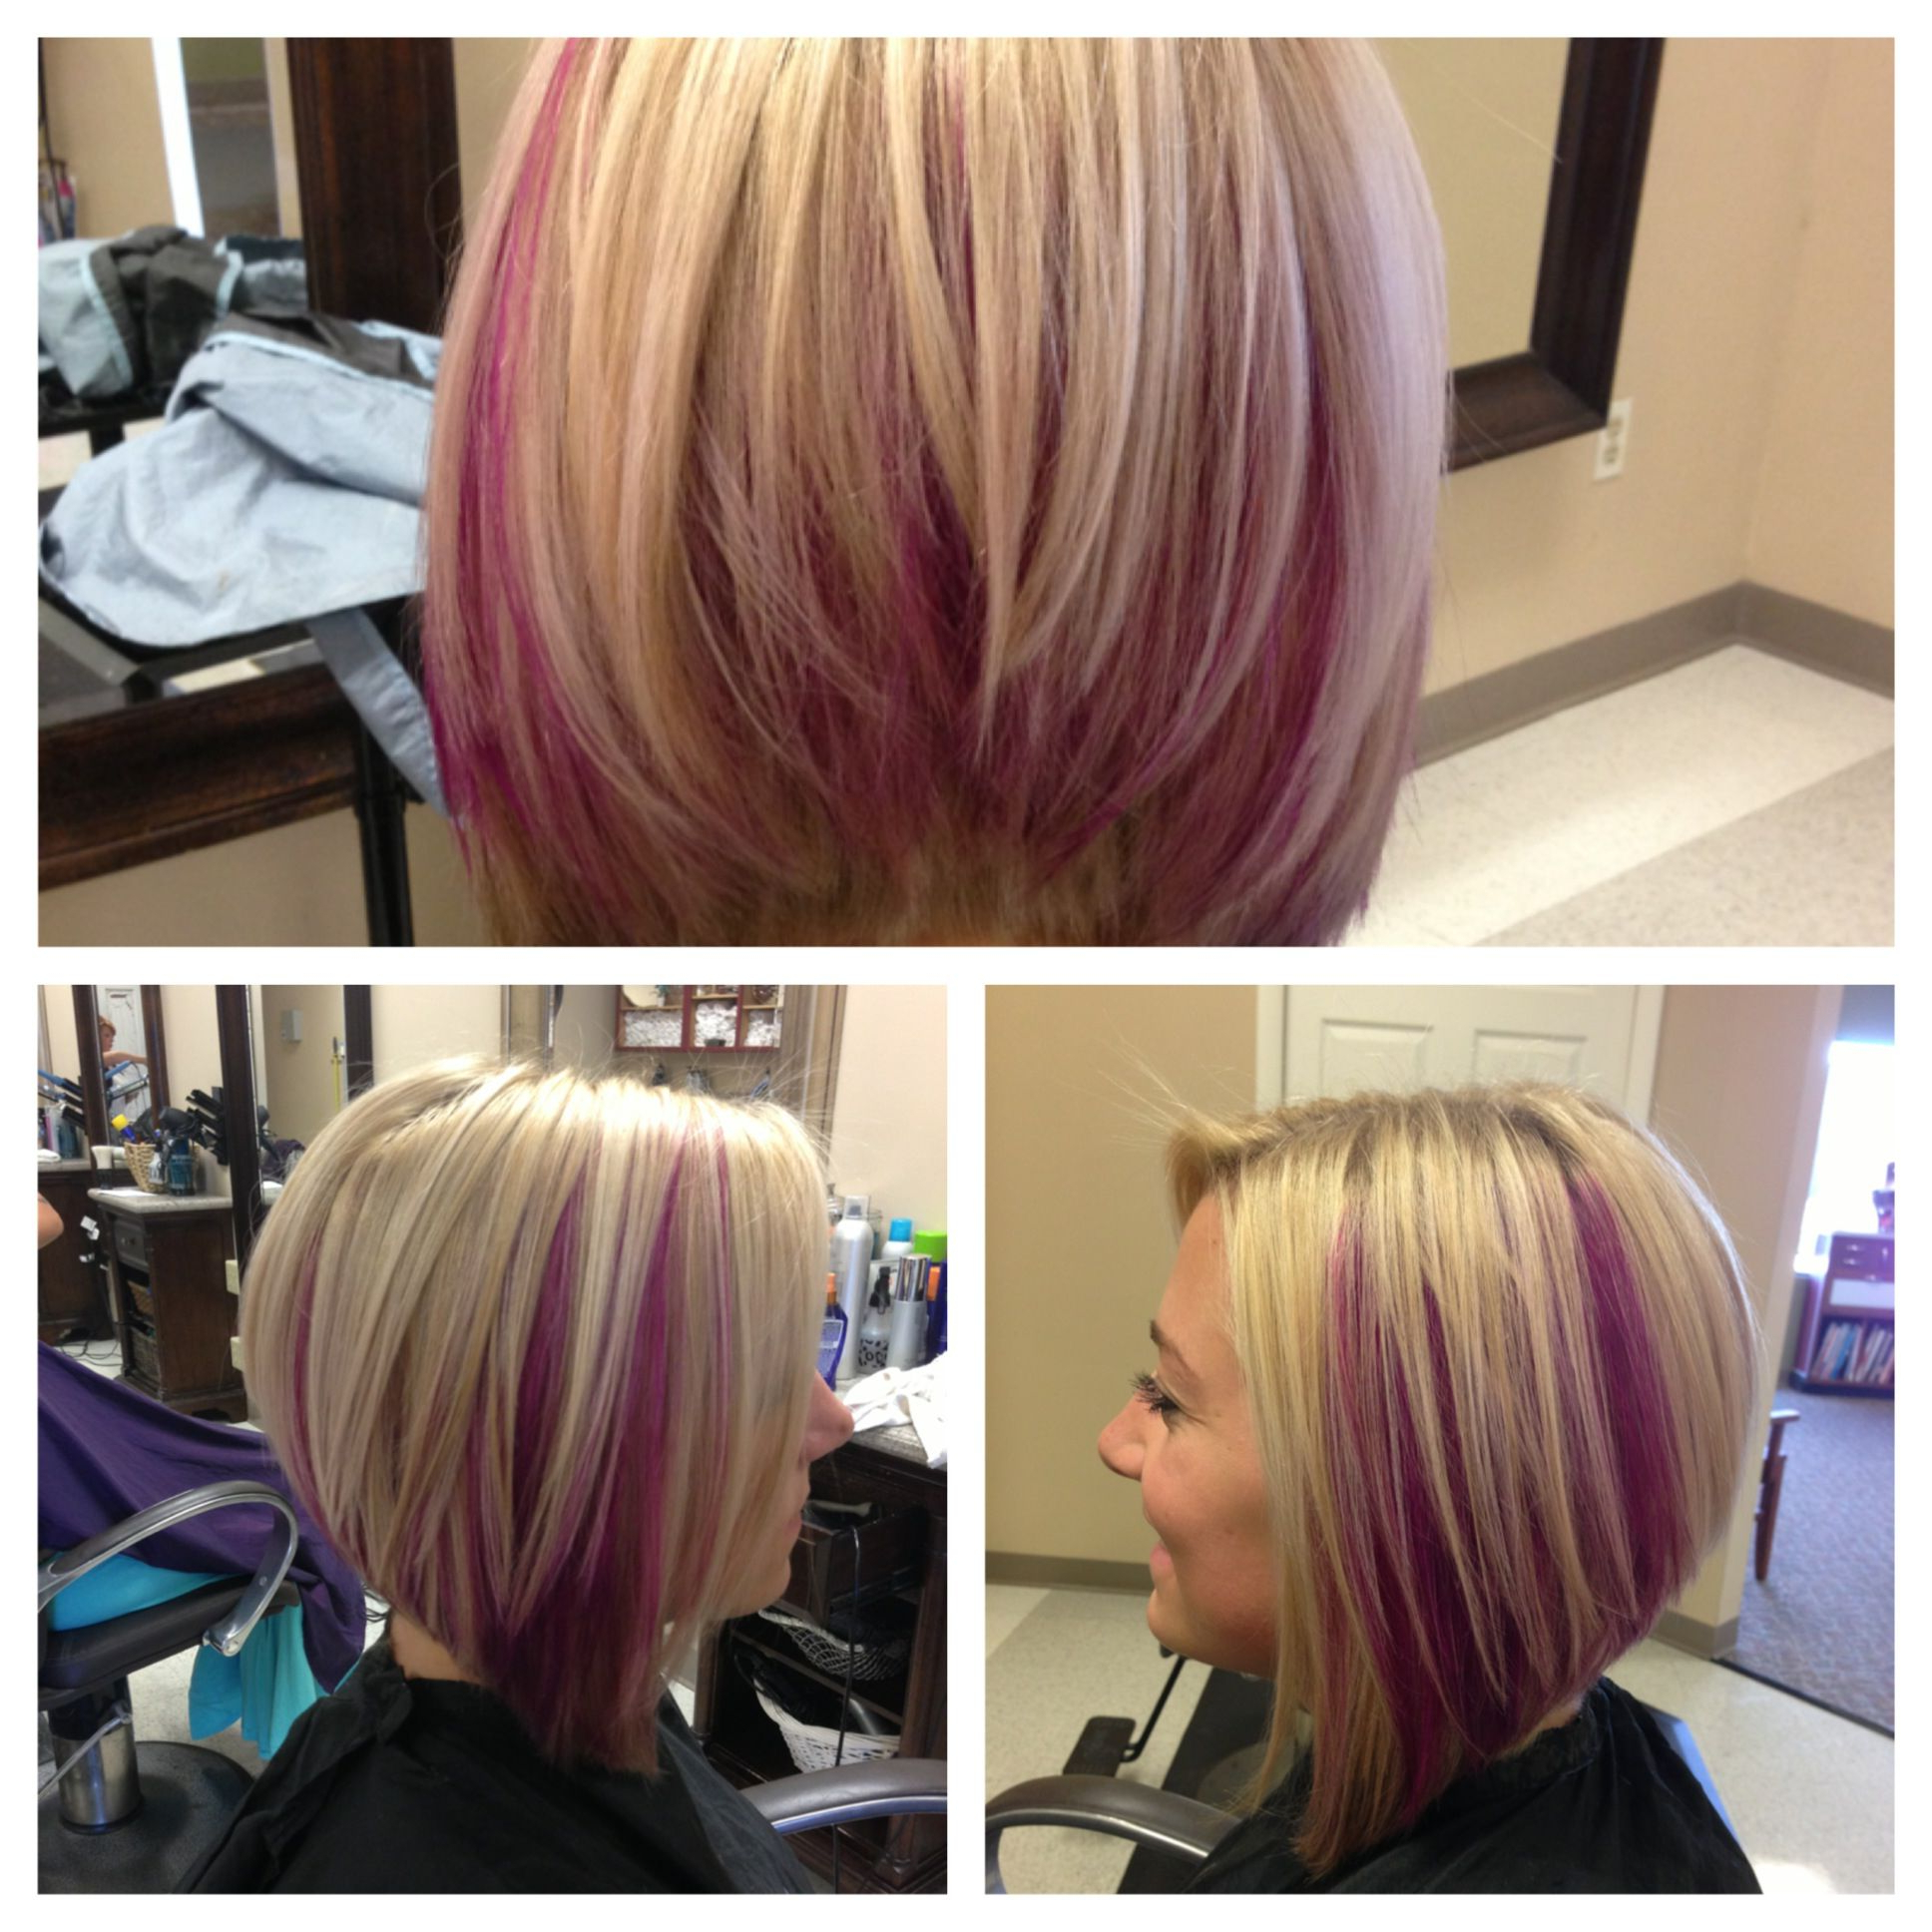 30 Must Try Medium Bob Hairstyles | Beautyyy | Pinterest | Hair With Extreme Angled Bob Haircuts With Pink Peek A Boos (View 3 of 20)